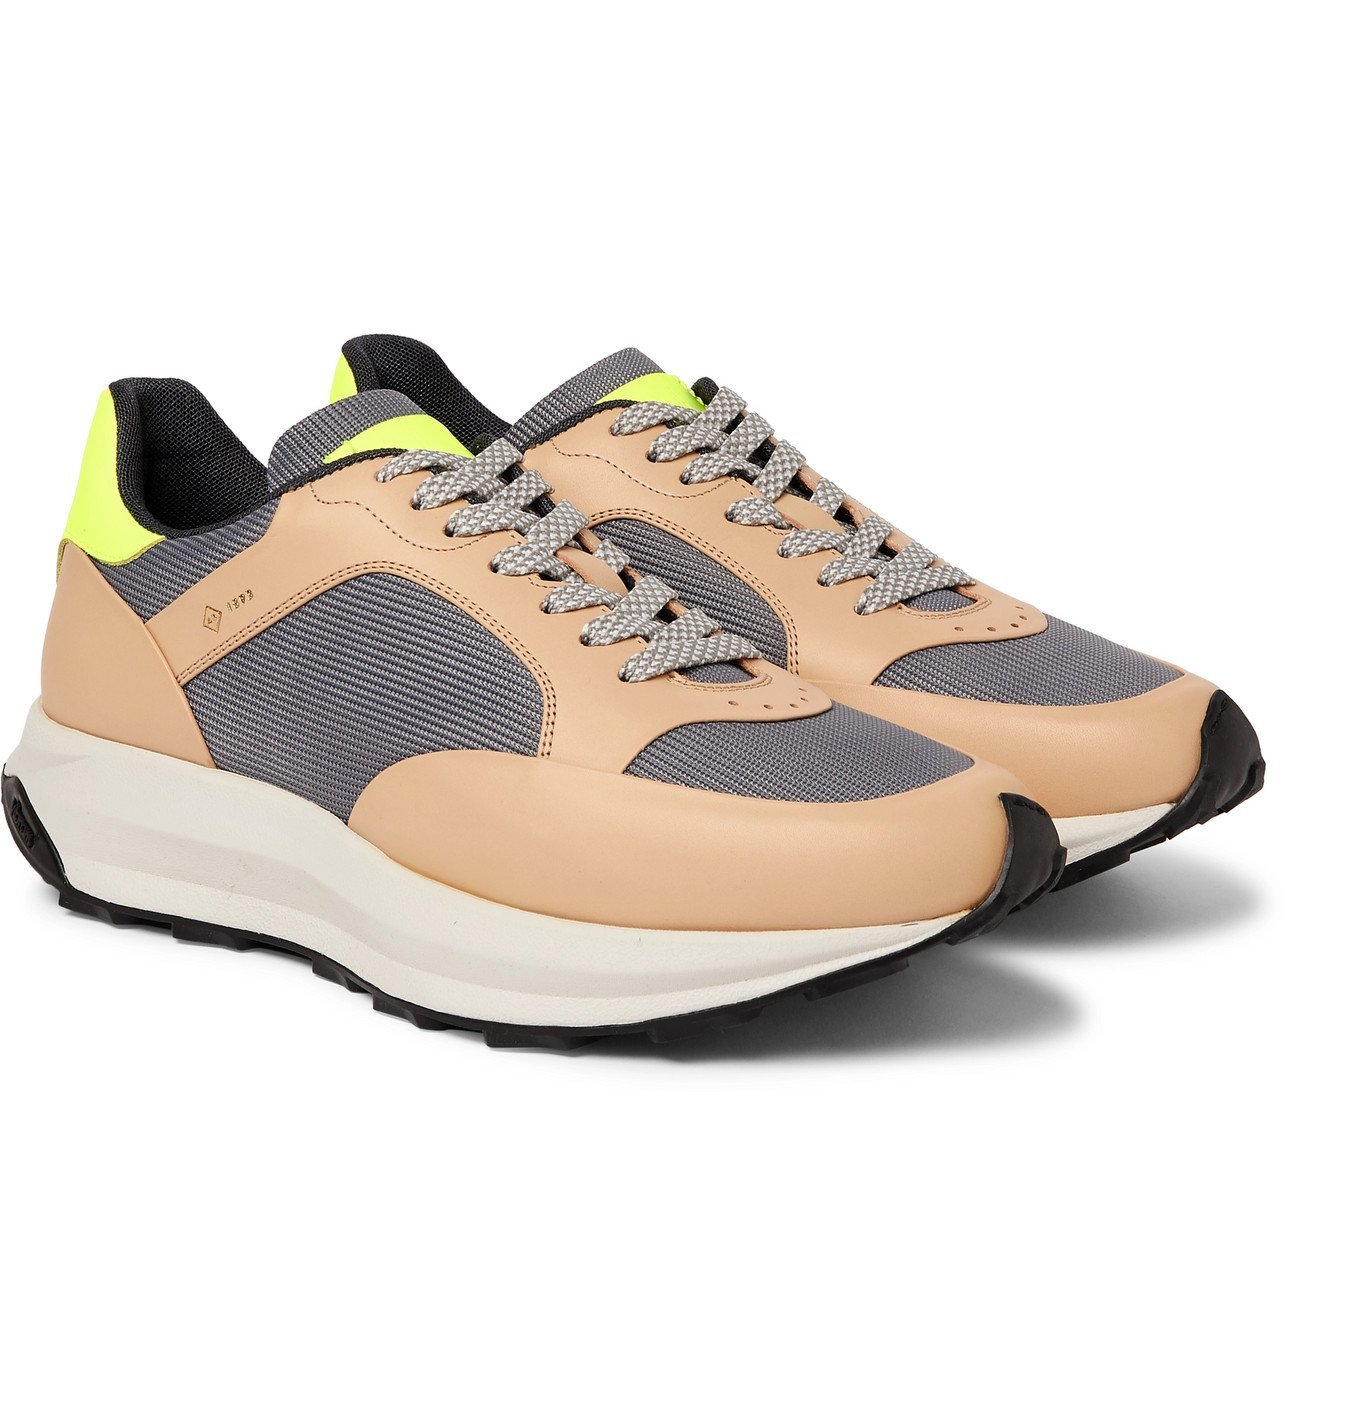 DUNHILL - Aerial Runner Rubber-Trimmed Mesh and Leather Sneakers - Brown